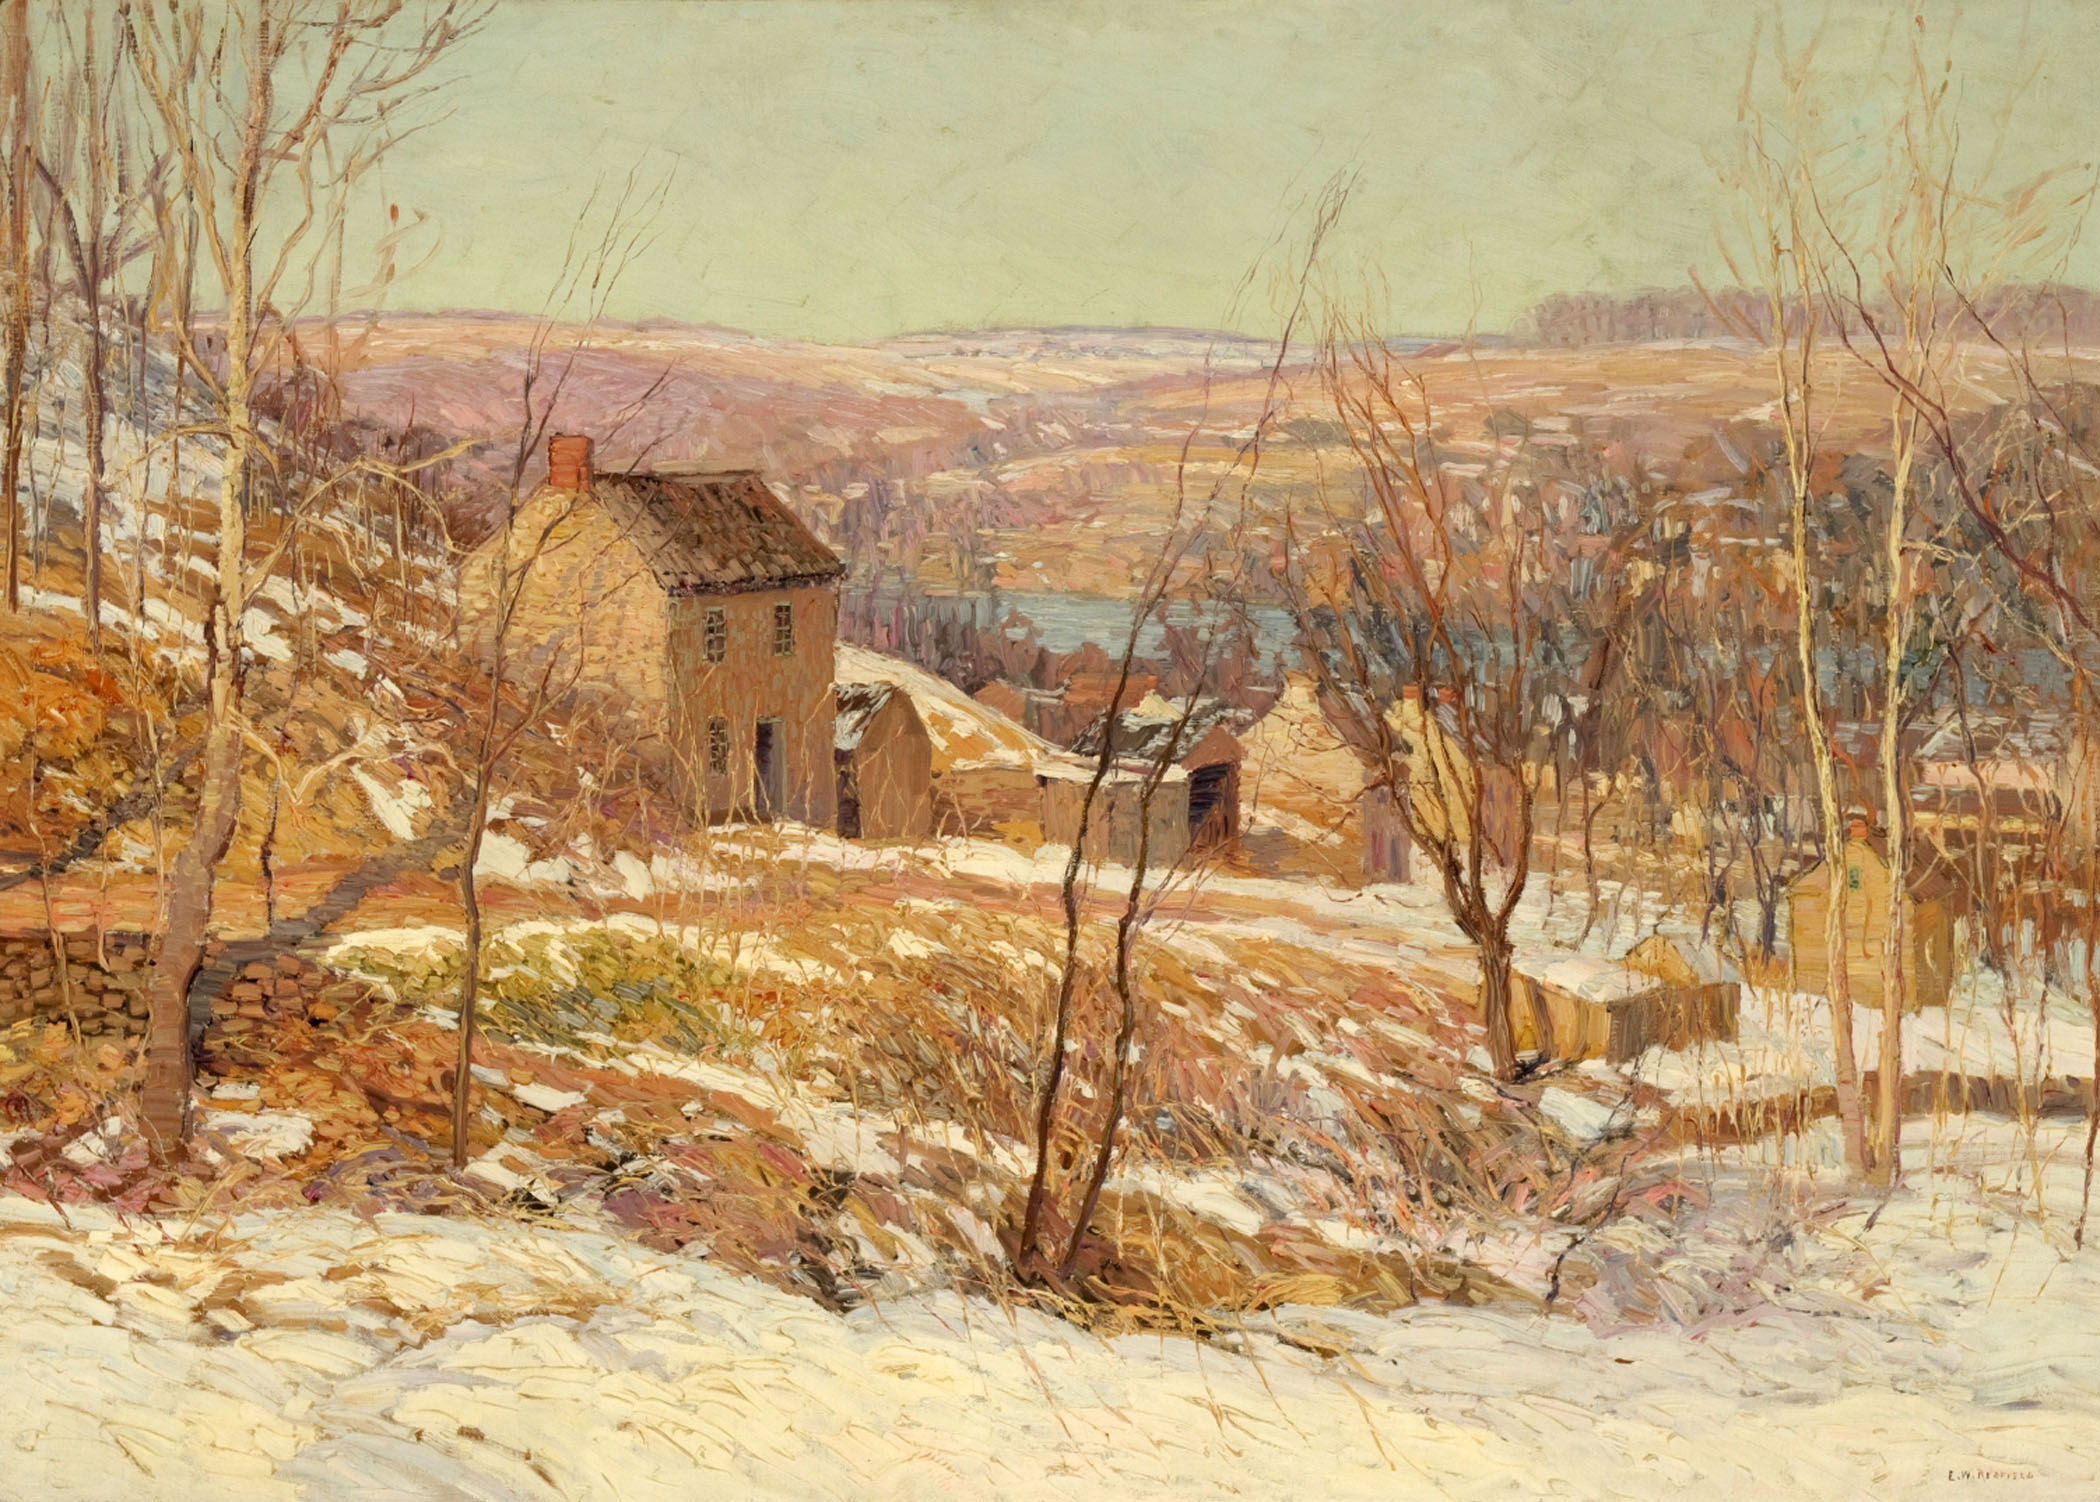 Edward Willis Redfield (American, 1869-1965), Winter in the Valley, c. 1920s, oil on canvas, 36 x 50 inches, Museum Purchase, Reading Public Museum, Reading, Pennsylvania.